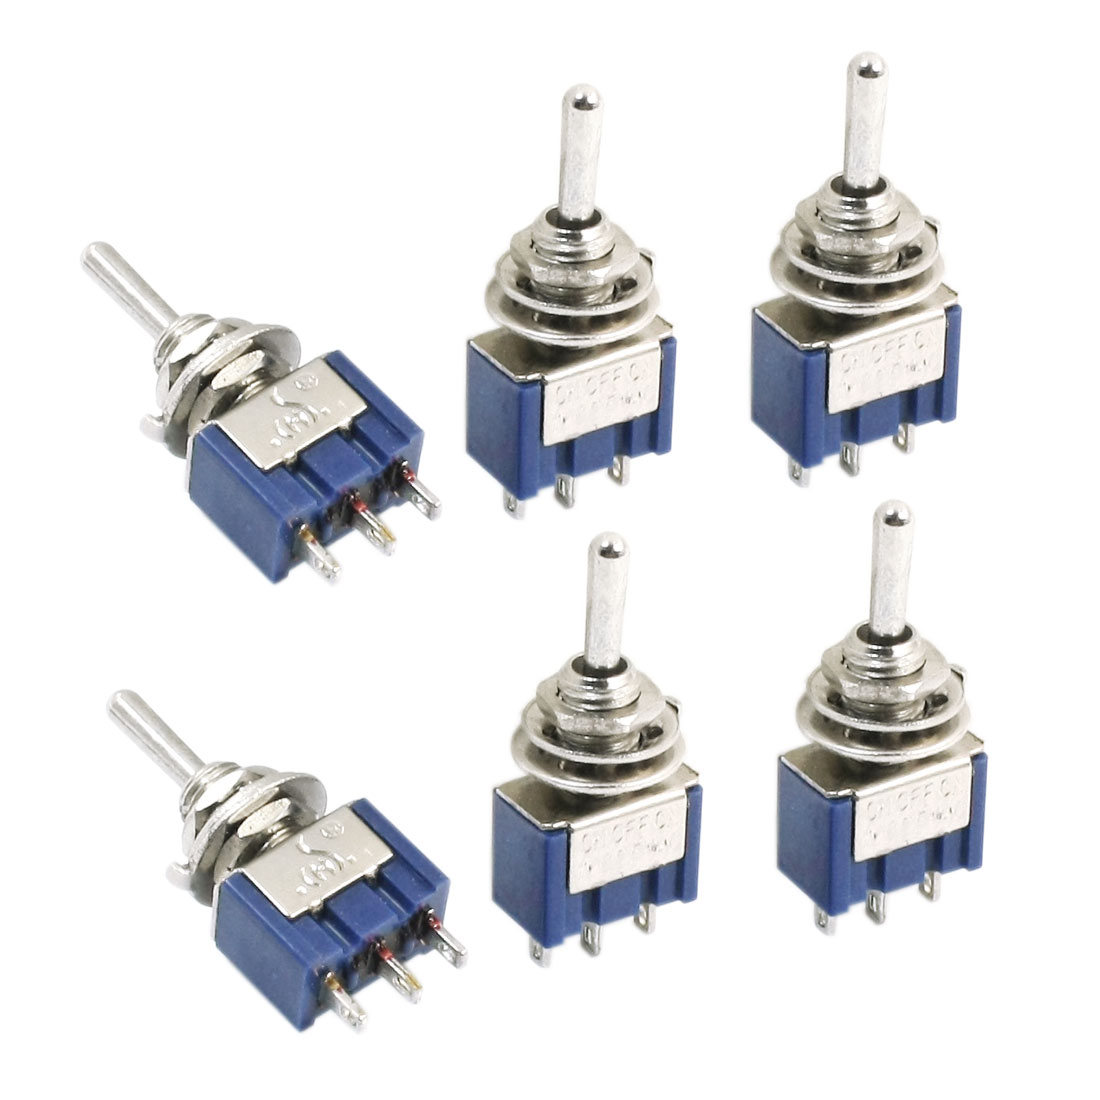 6Pcs Blue Three Positions 3-Pin SPDT ON-OFF-ON Mini Toggle Switch 6A AC125V